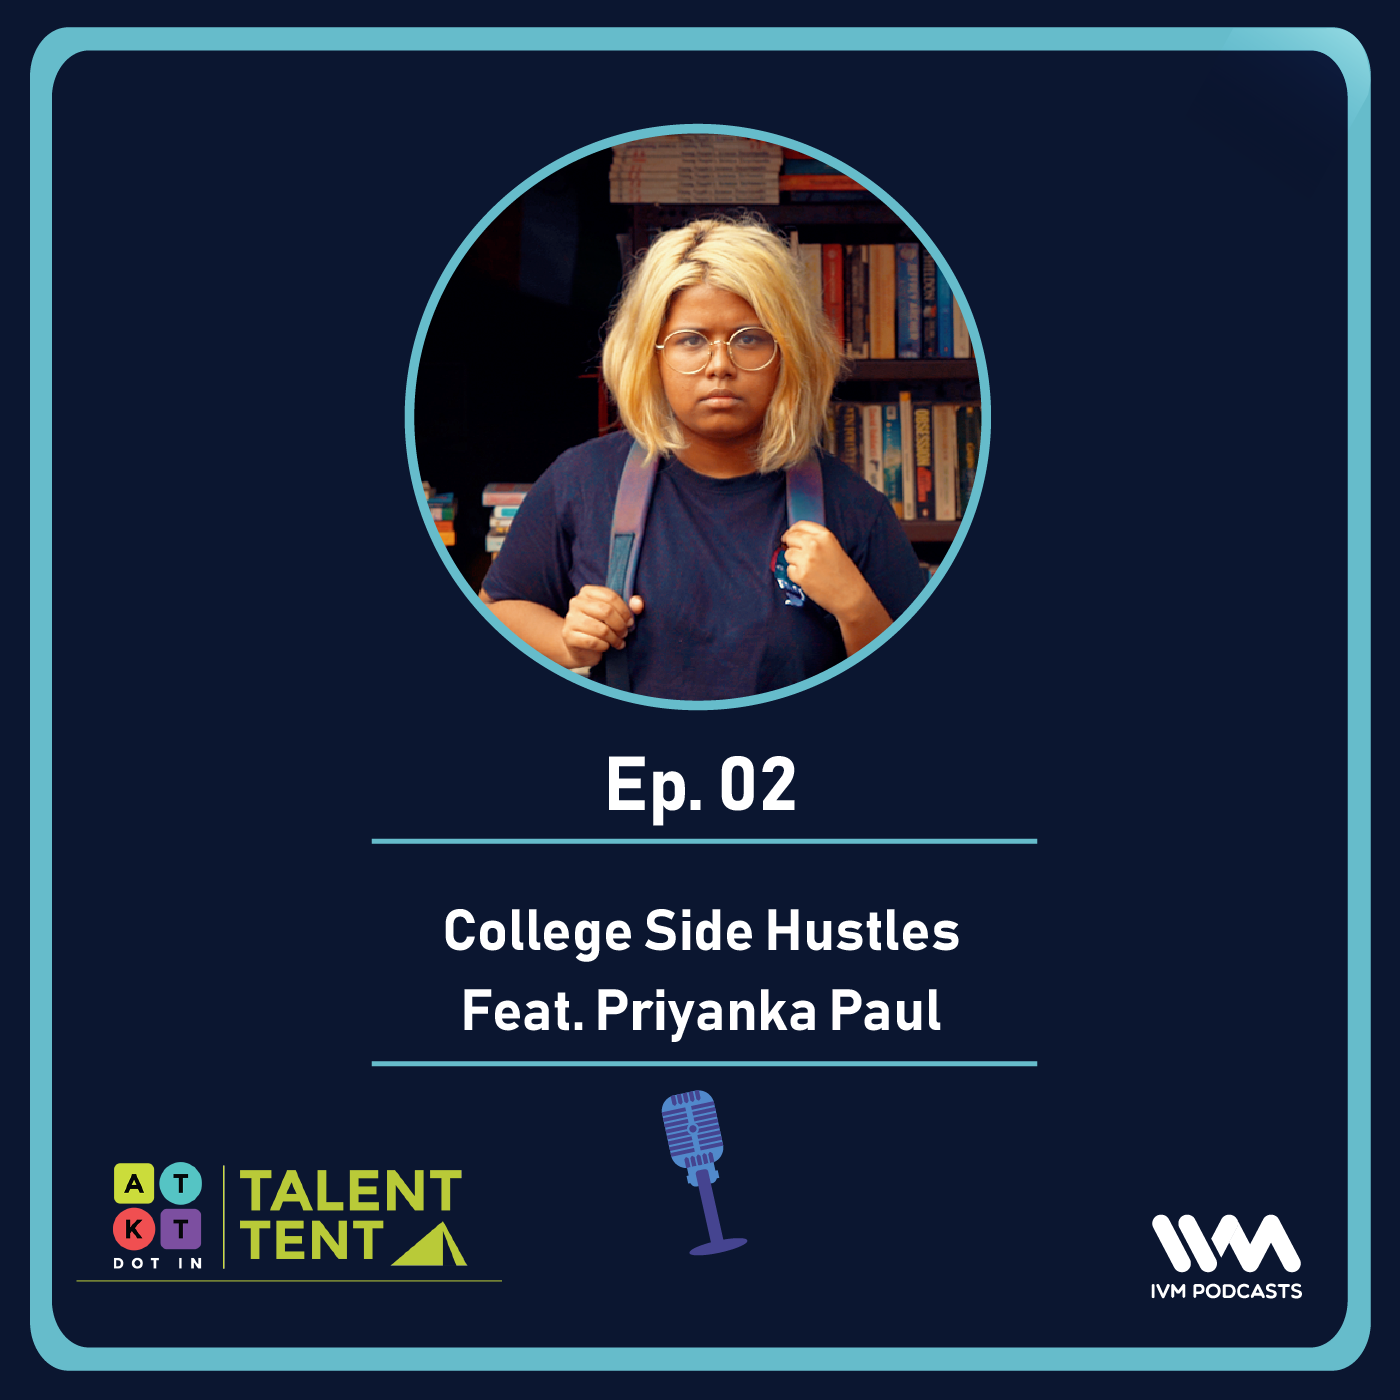 Ep. 02: College Side Hustles